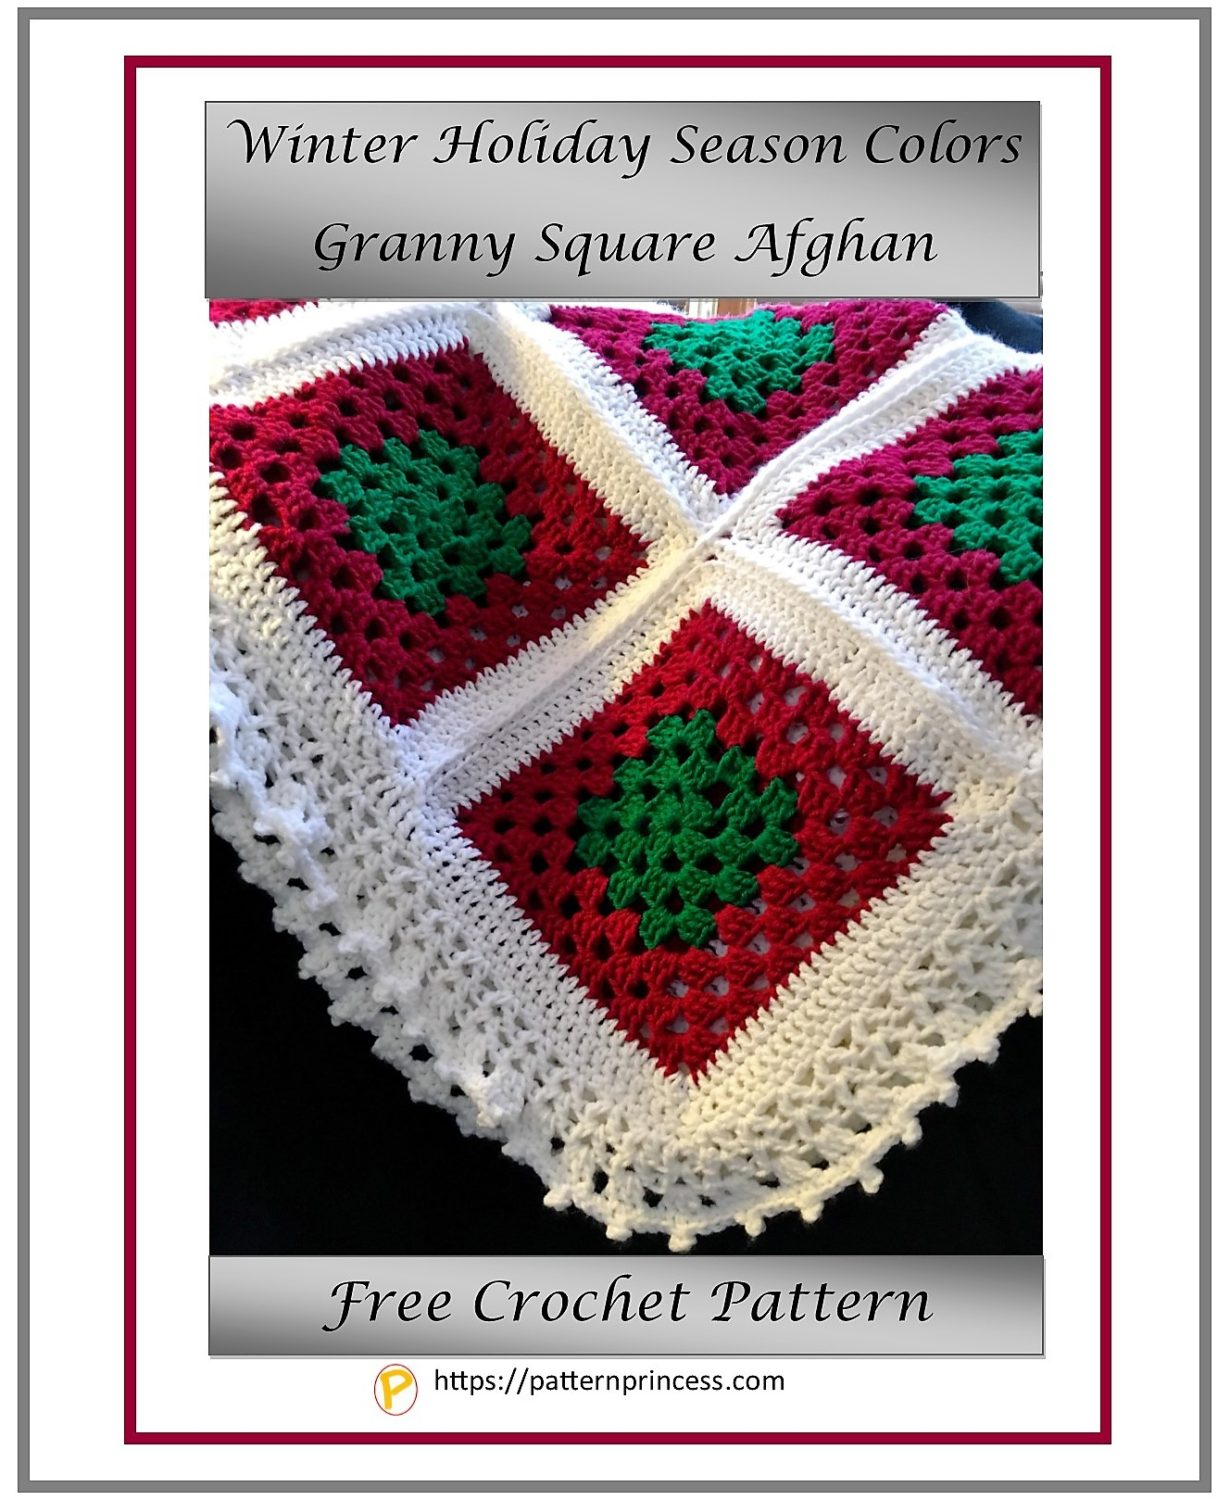 Winter Holiday Season Colors Granny Square Afghan 1